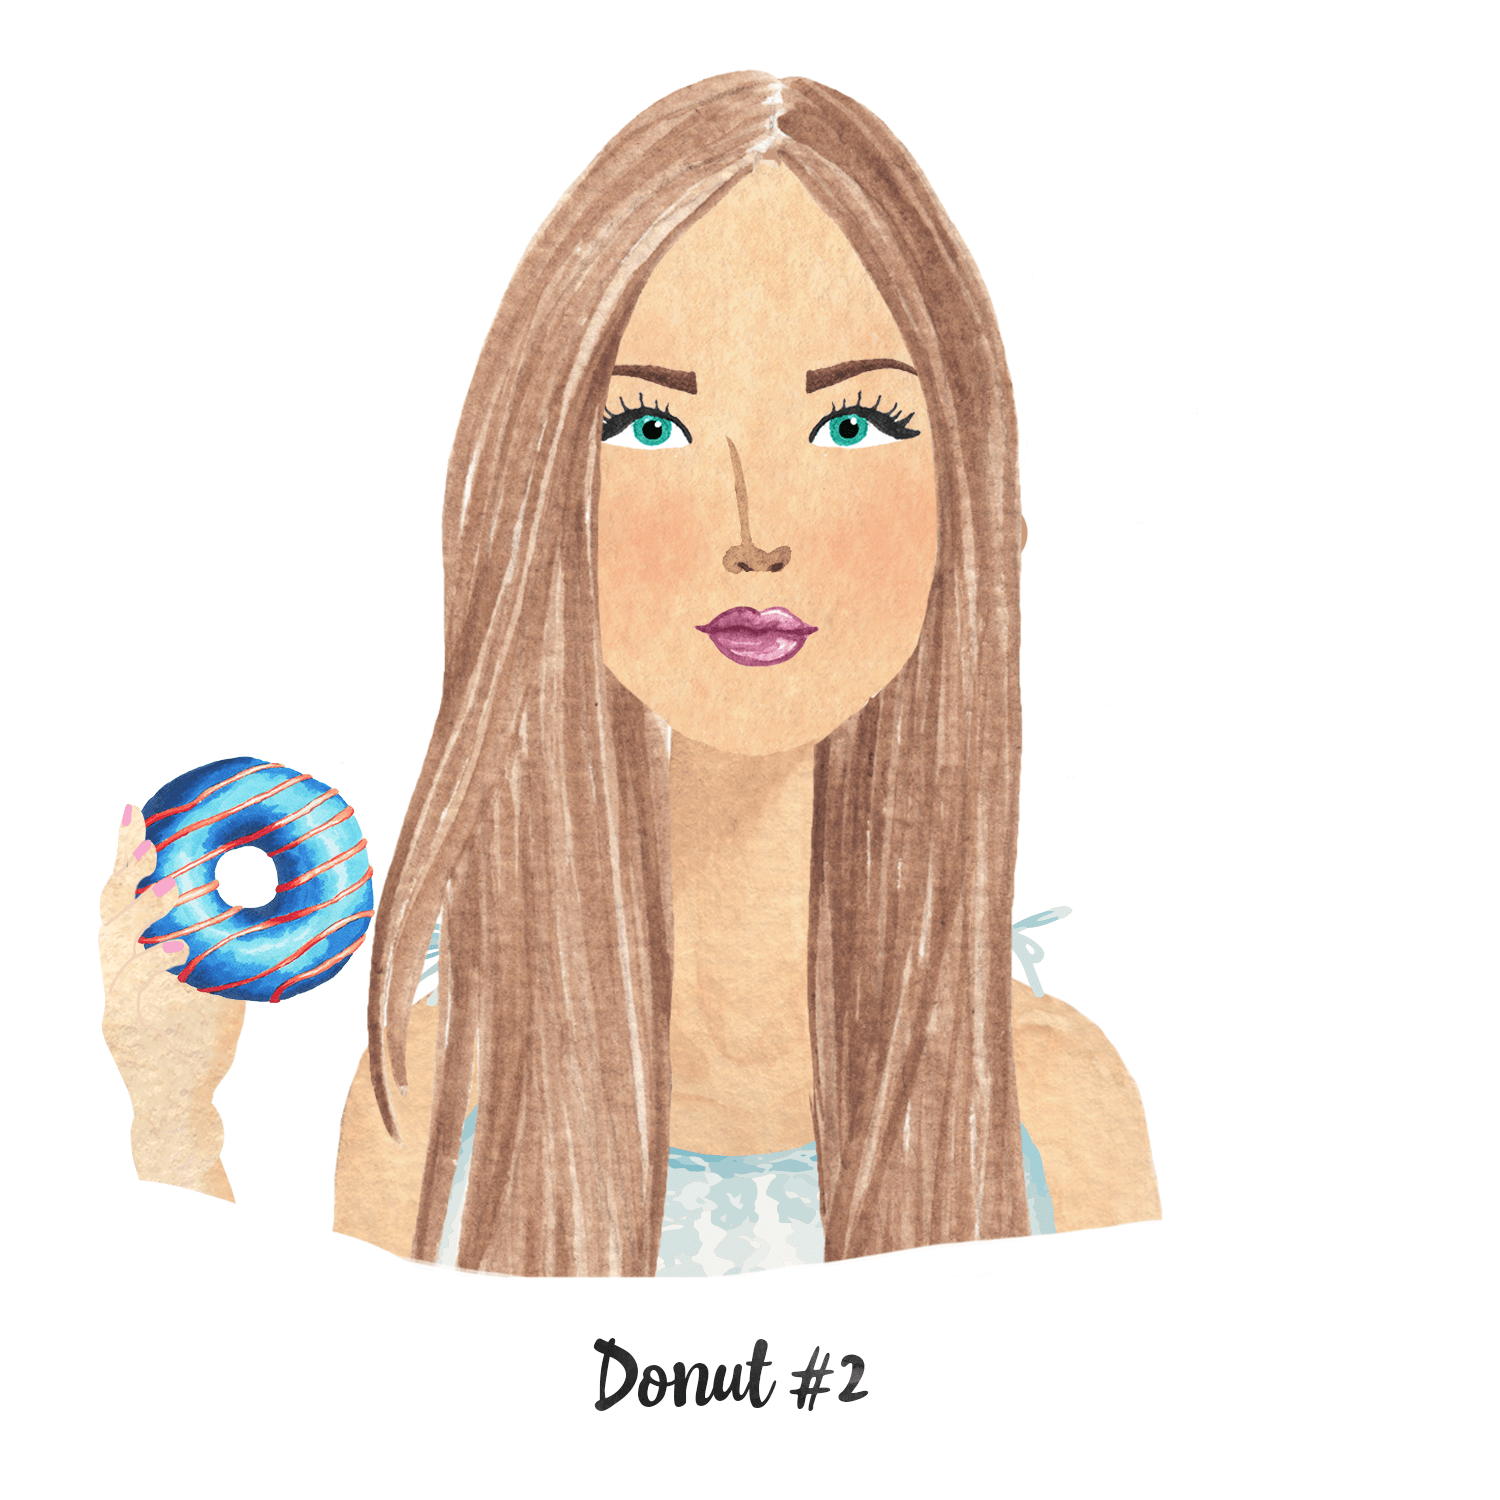 Donut 02.png